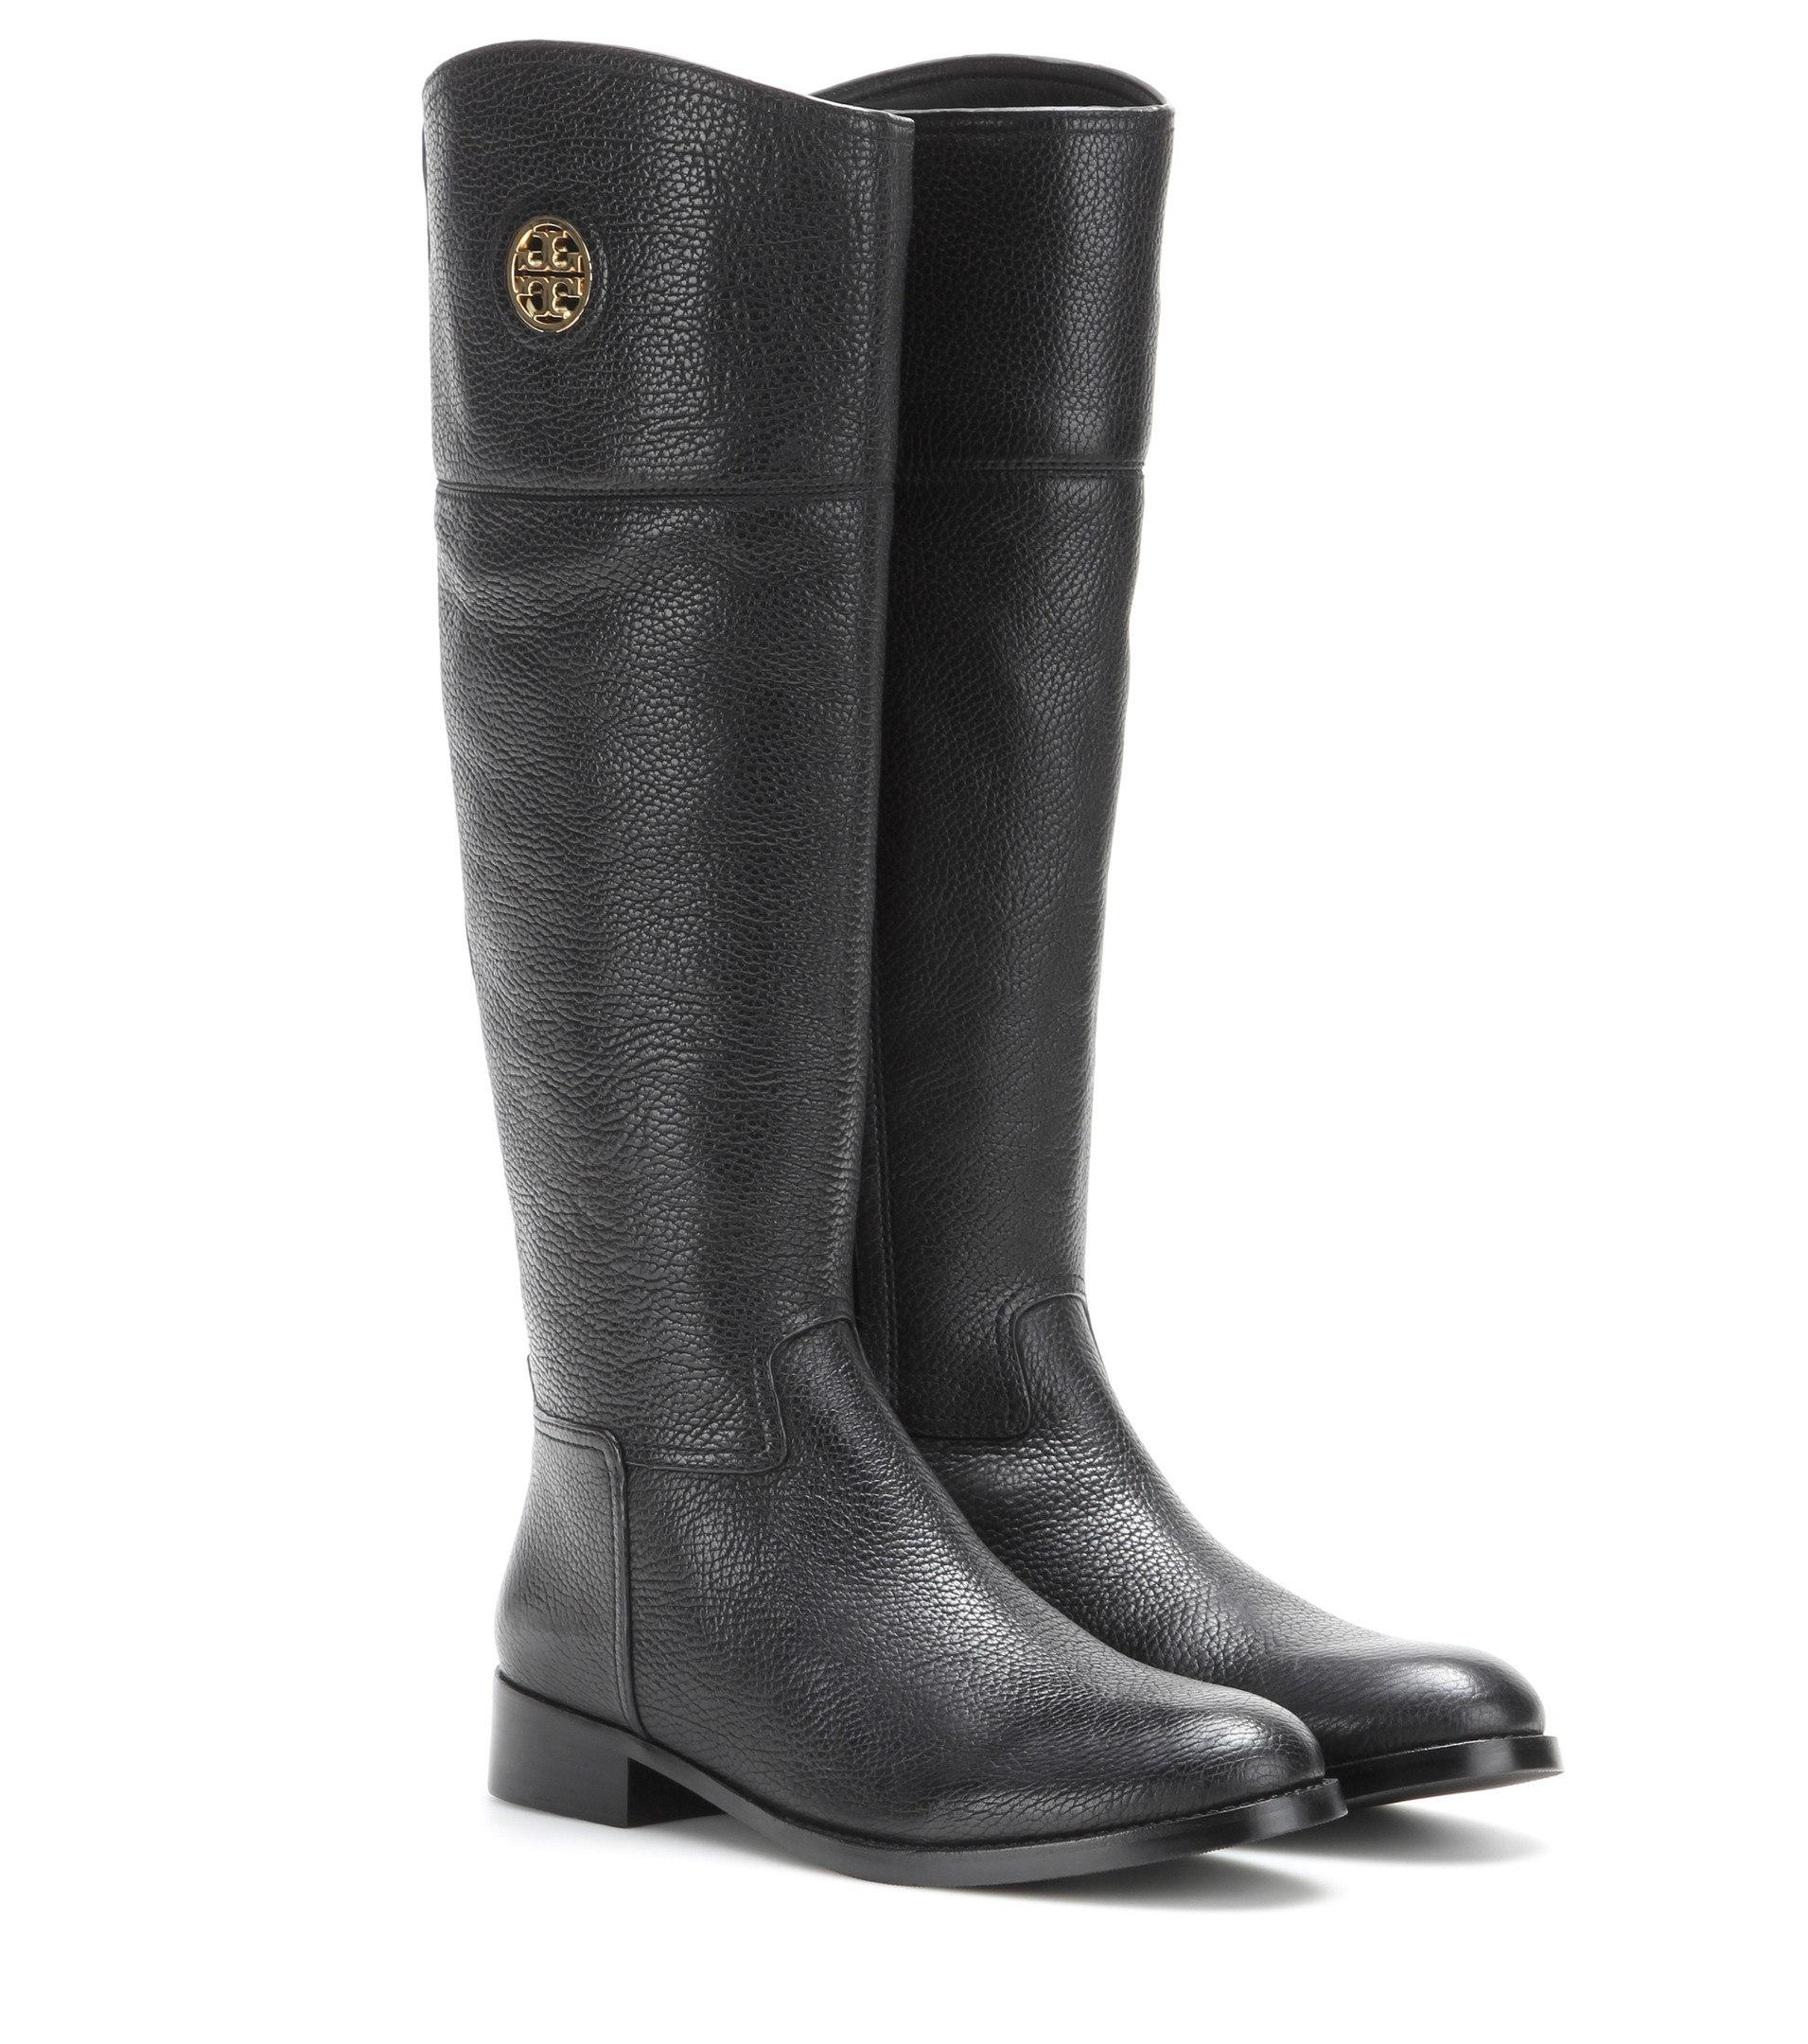 0023b4133 ... Men s Women s-Tory Burch Black Junction Riding Tumbled Tumbled Tumbled  Leather Boots Booties ...